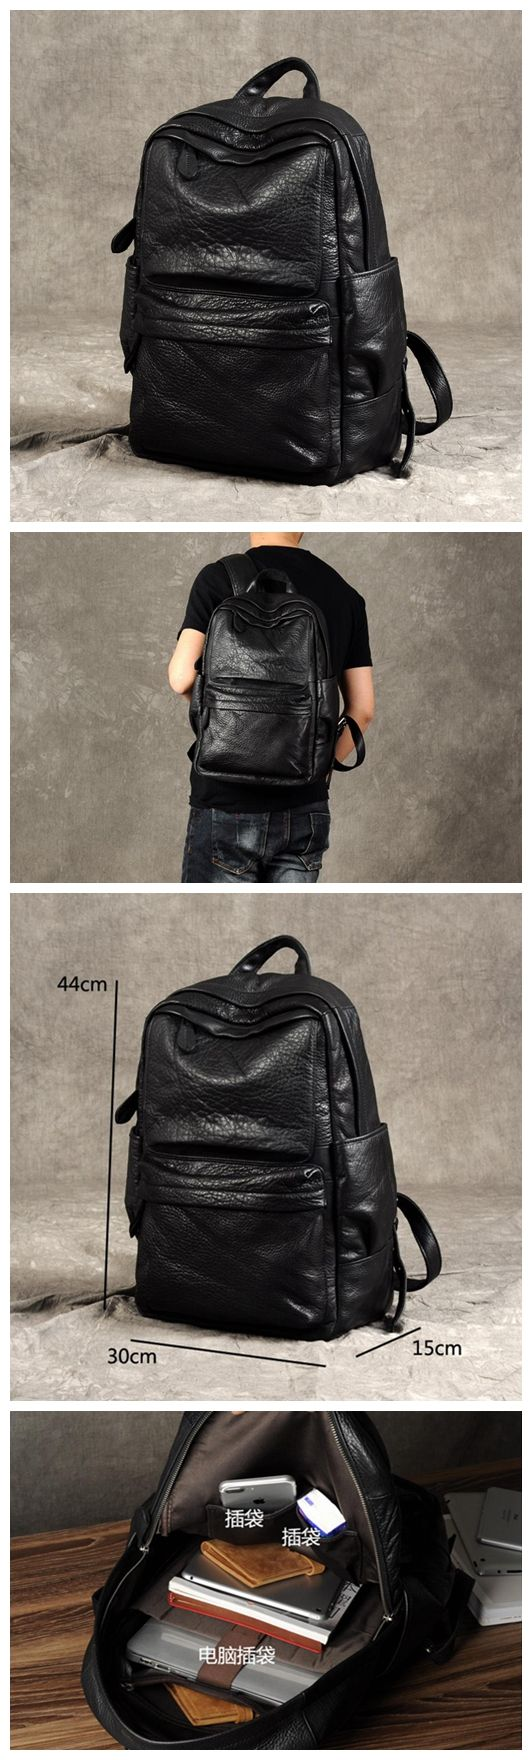 HANDMADE LEATHER BACKPACK, LEATHER LAPTOP BACKPACK